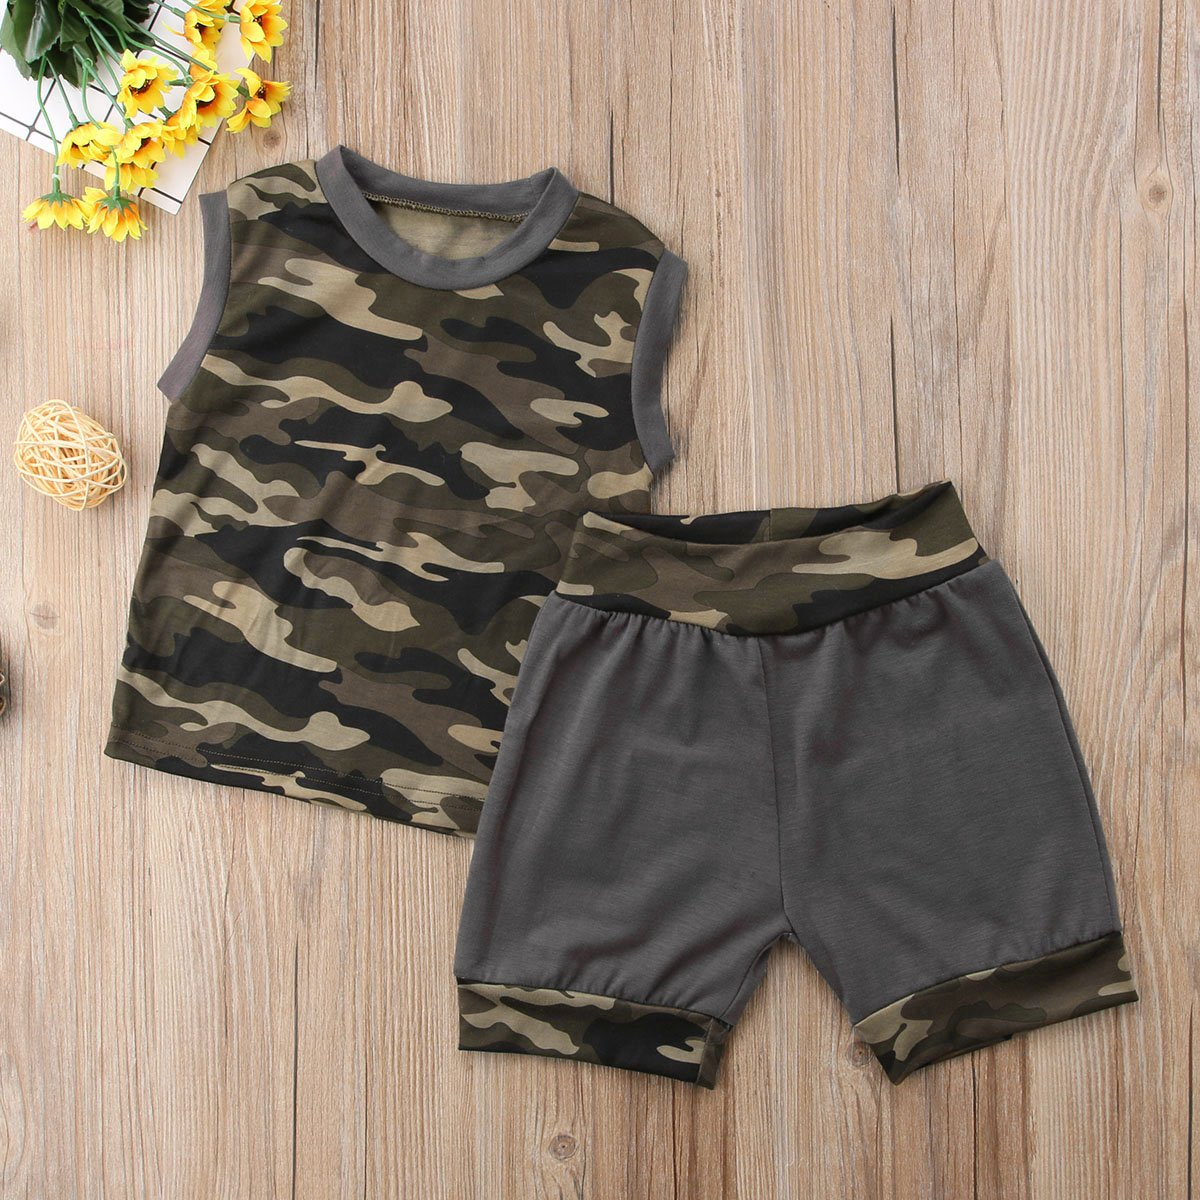 ONES Baby Toddler Boys Summer Camo Outfits Sleeveless Tank Top /& Pant Short Clothing Set